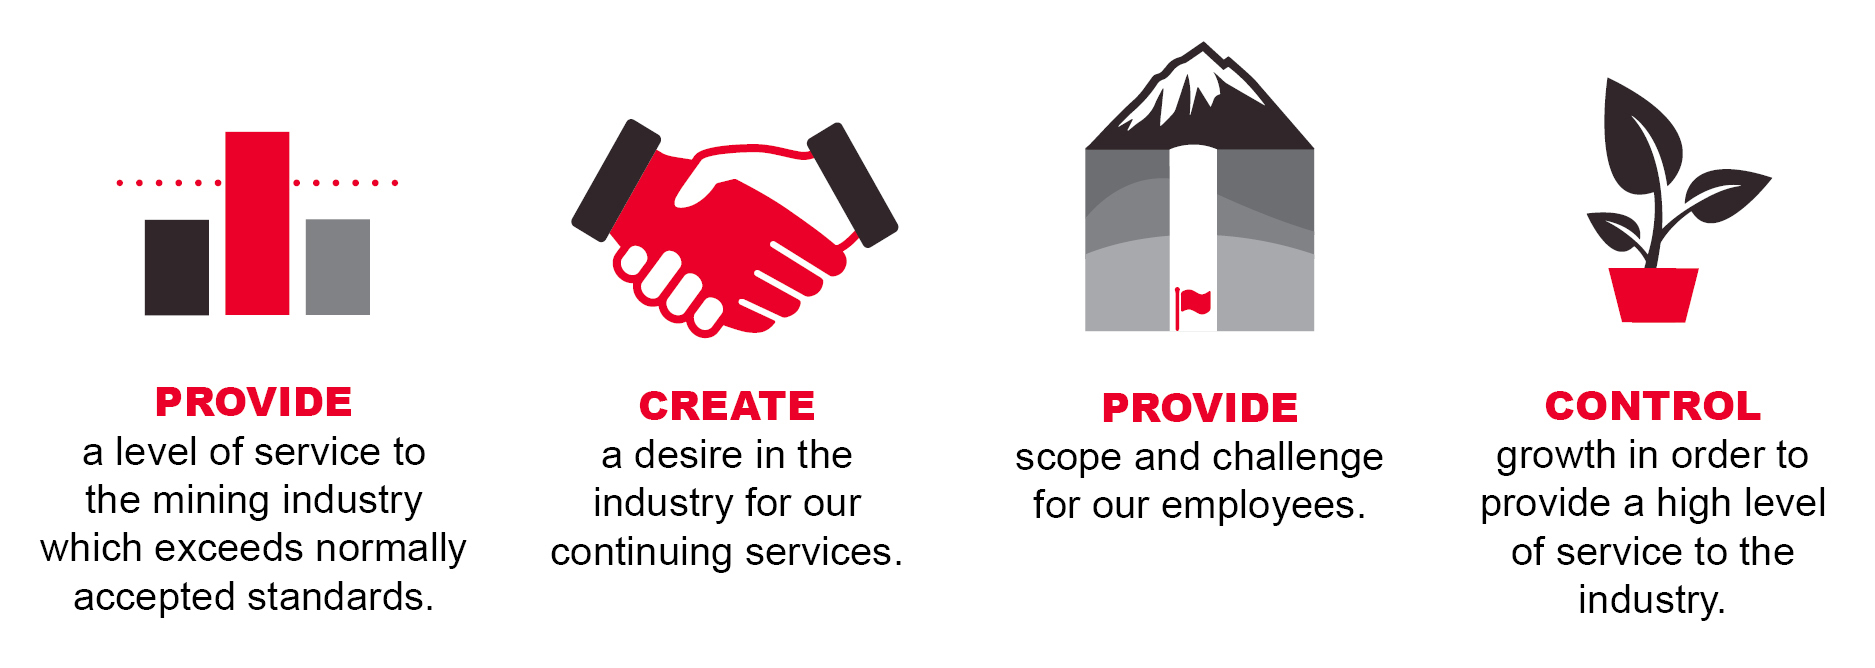 Redpath's Four Commitment Icons